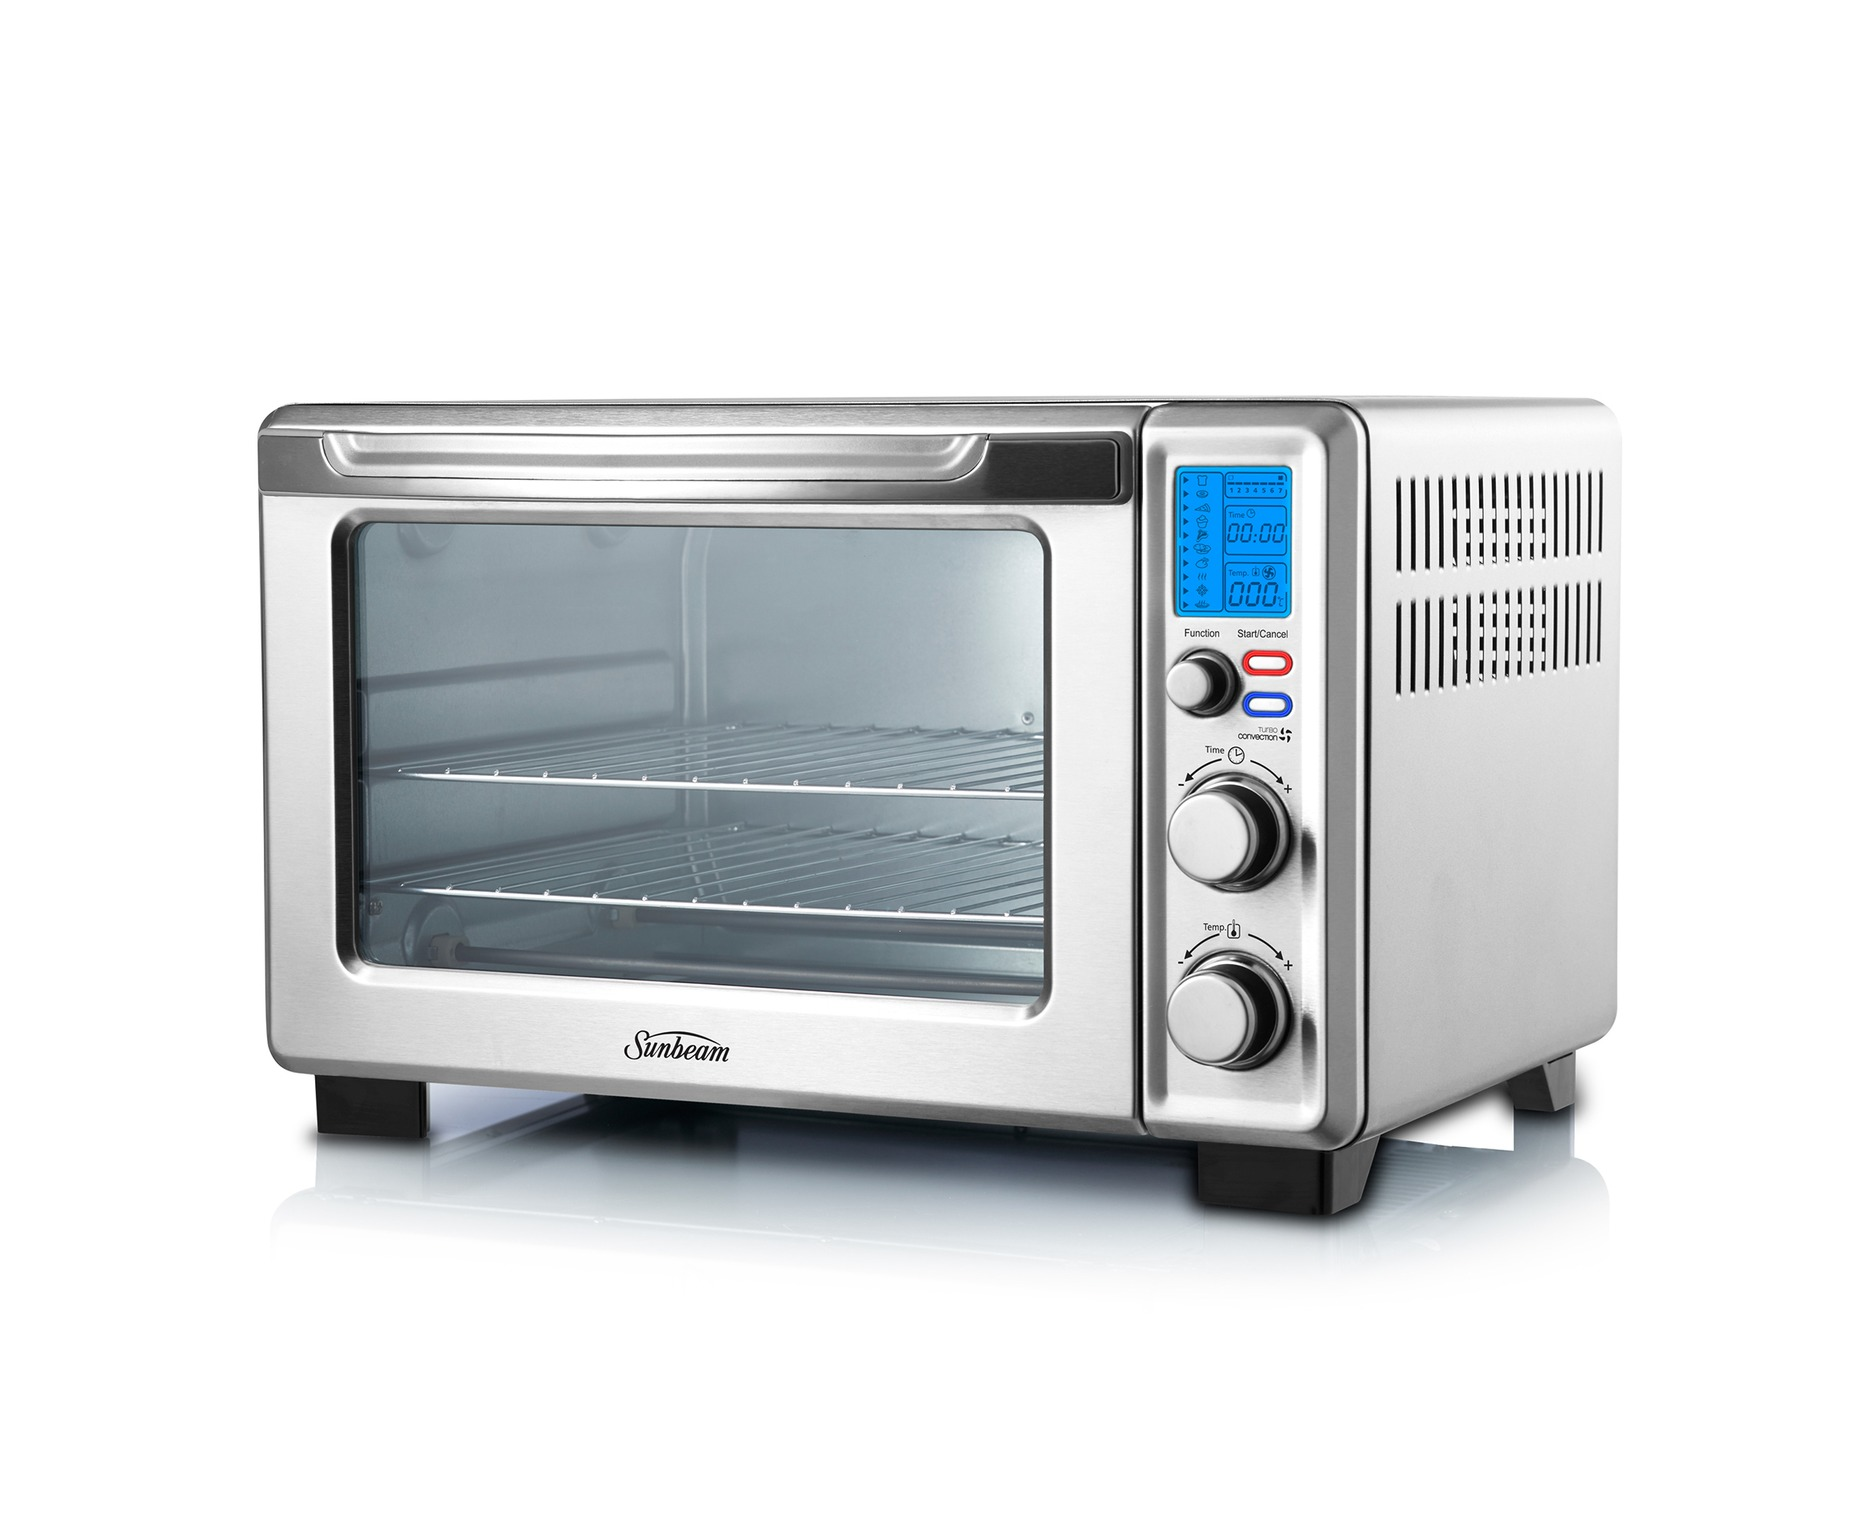 Sunbeam BT7100 22L Quick Start Digital Oven | Catch.com.au